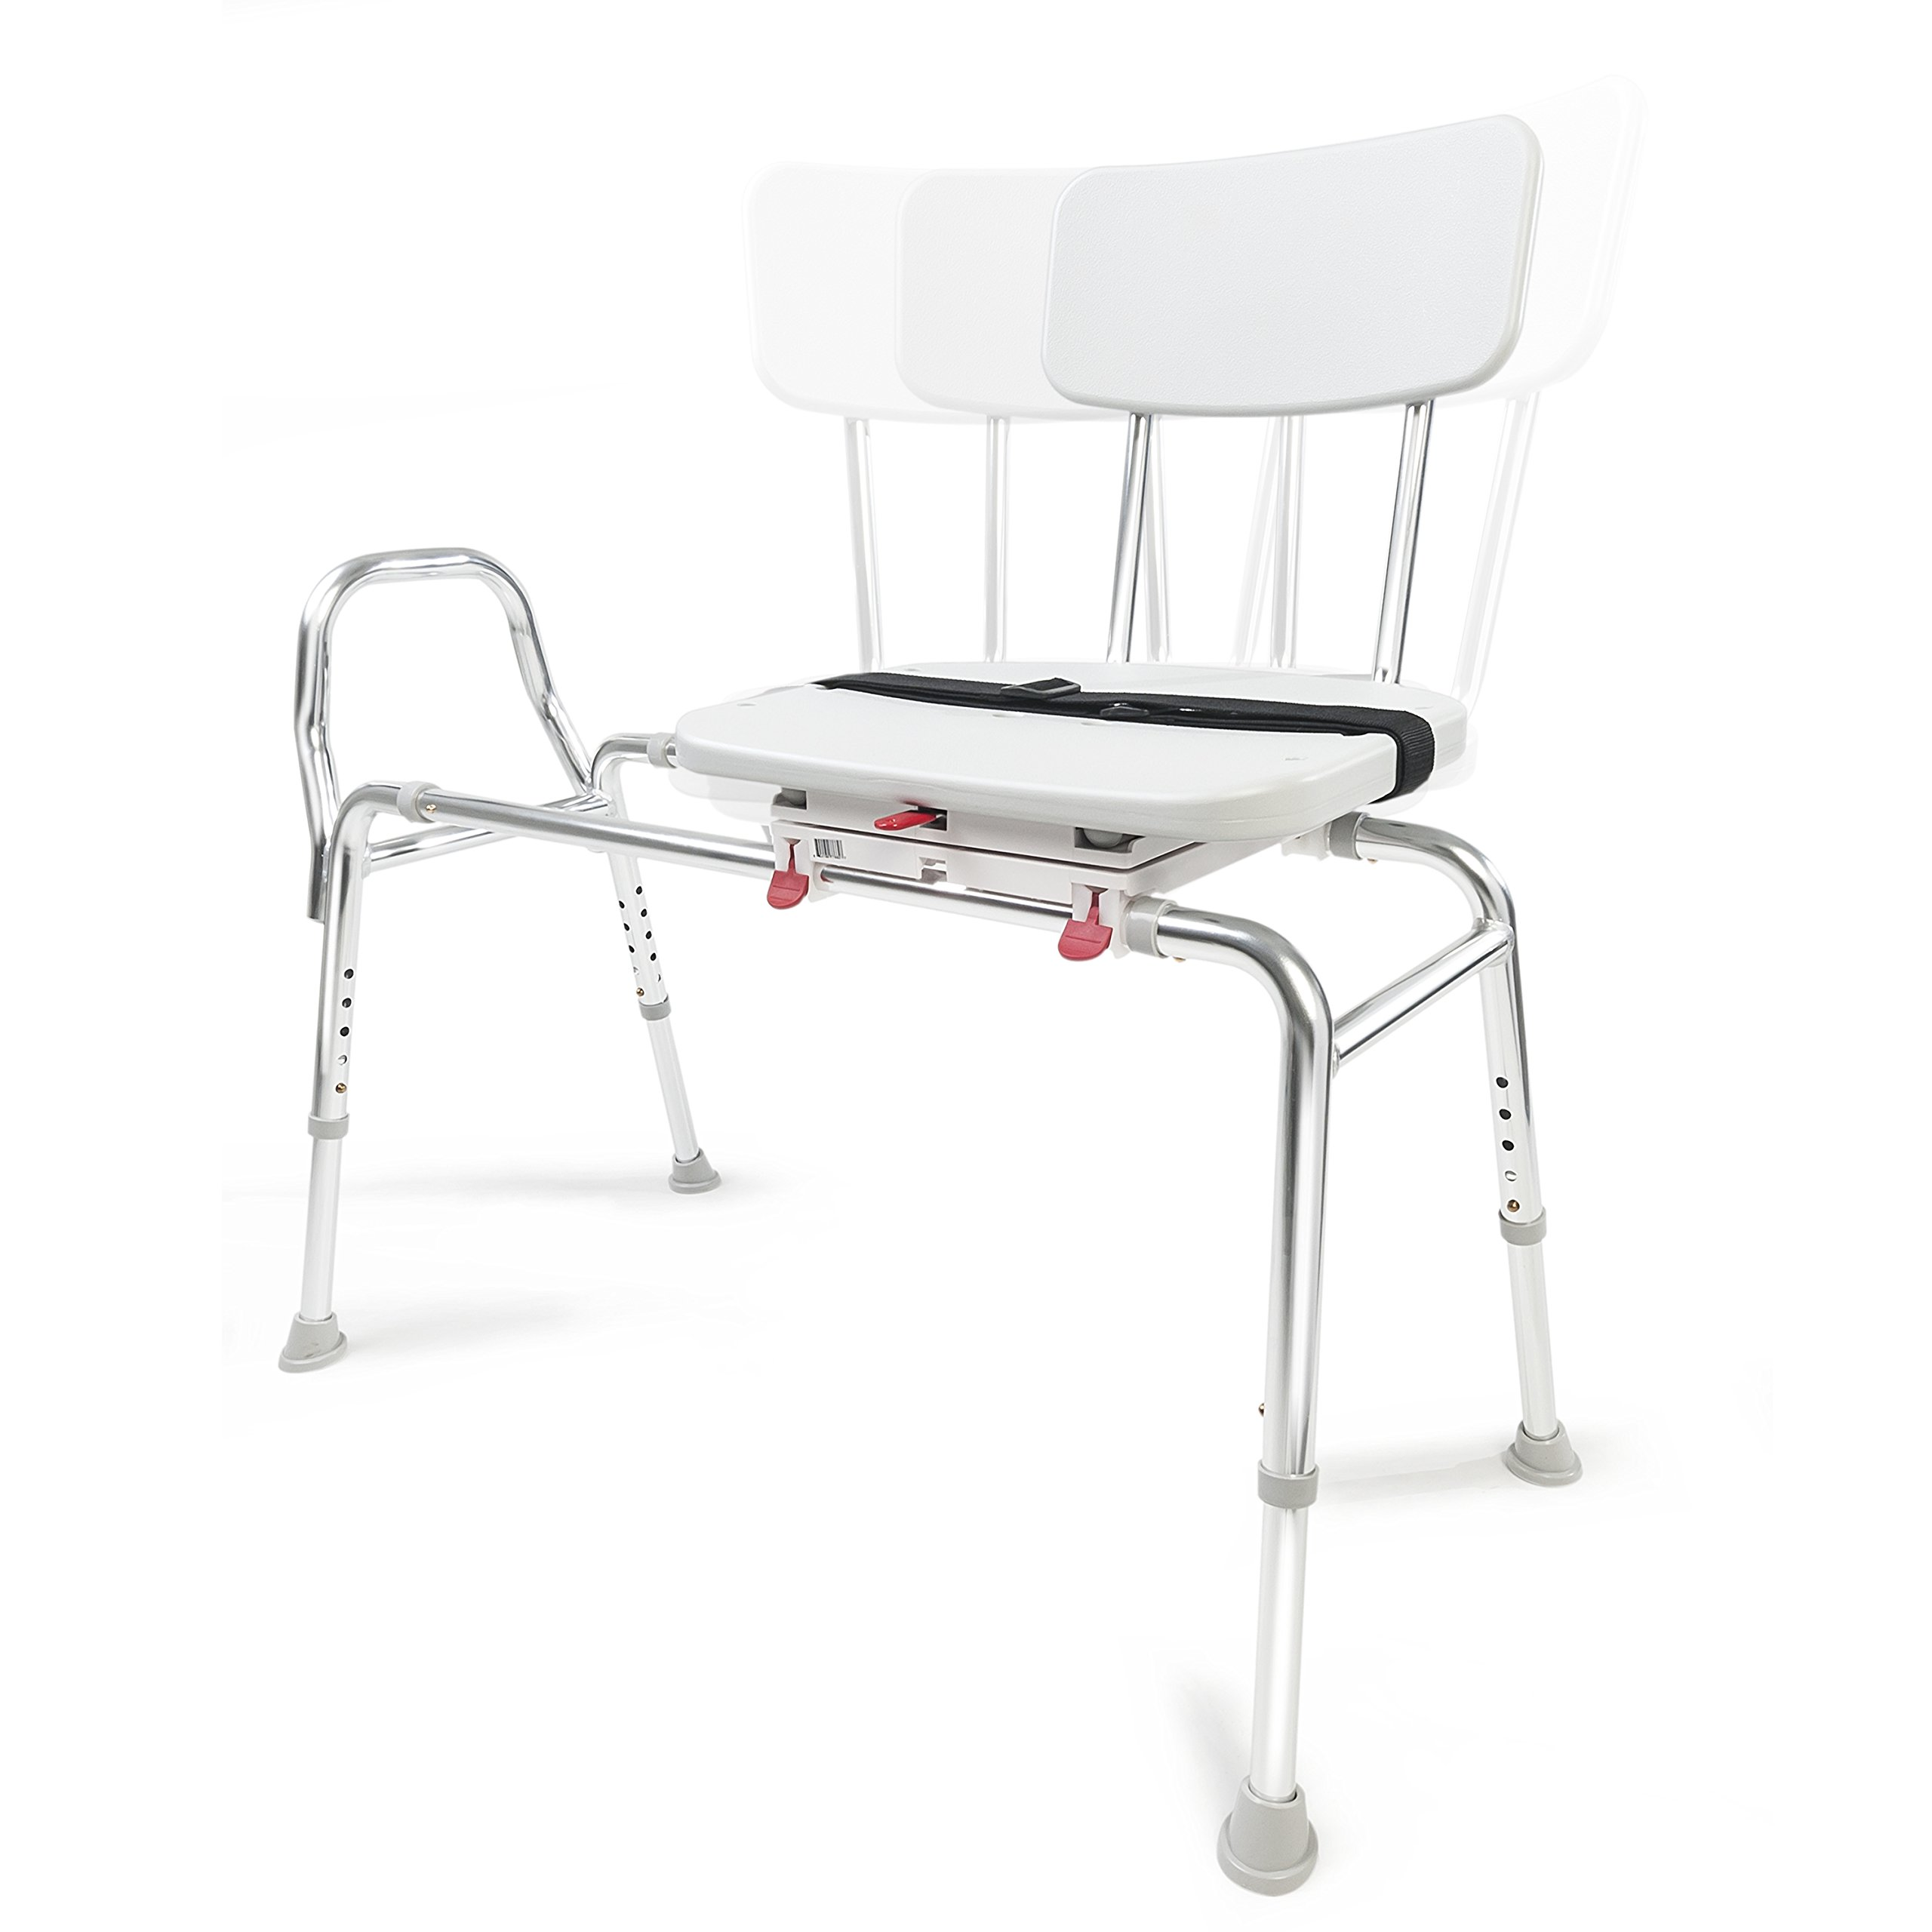 Eagle Health Supplies Swivel Sliding Shower Transfer Bench with Adjustable Height, No Tool Assembly by Eagle Health Supplies (Image #2)